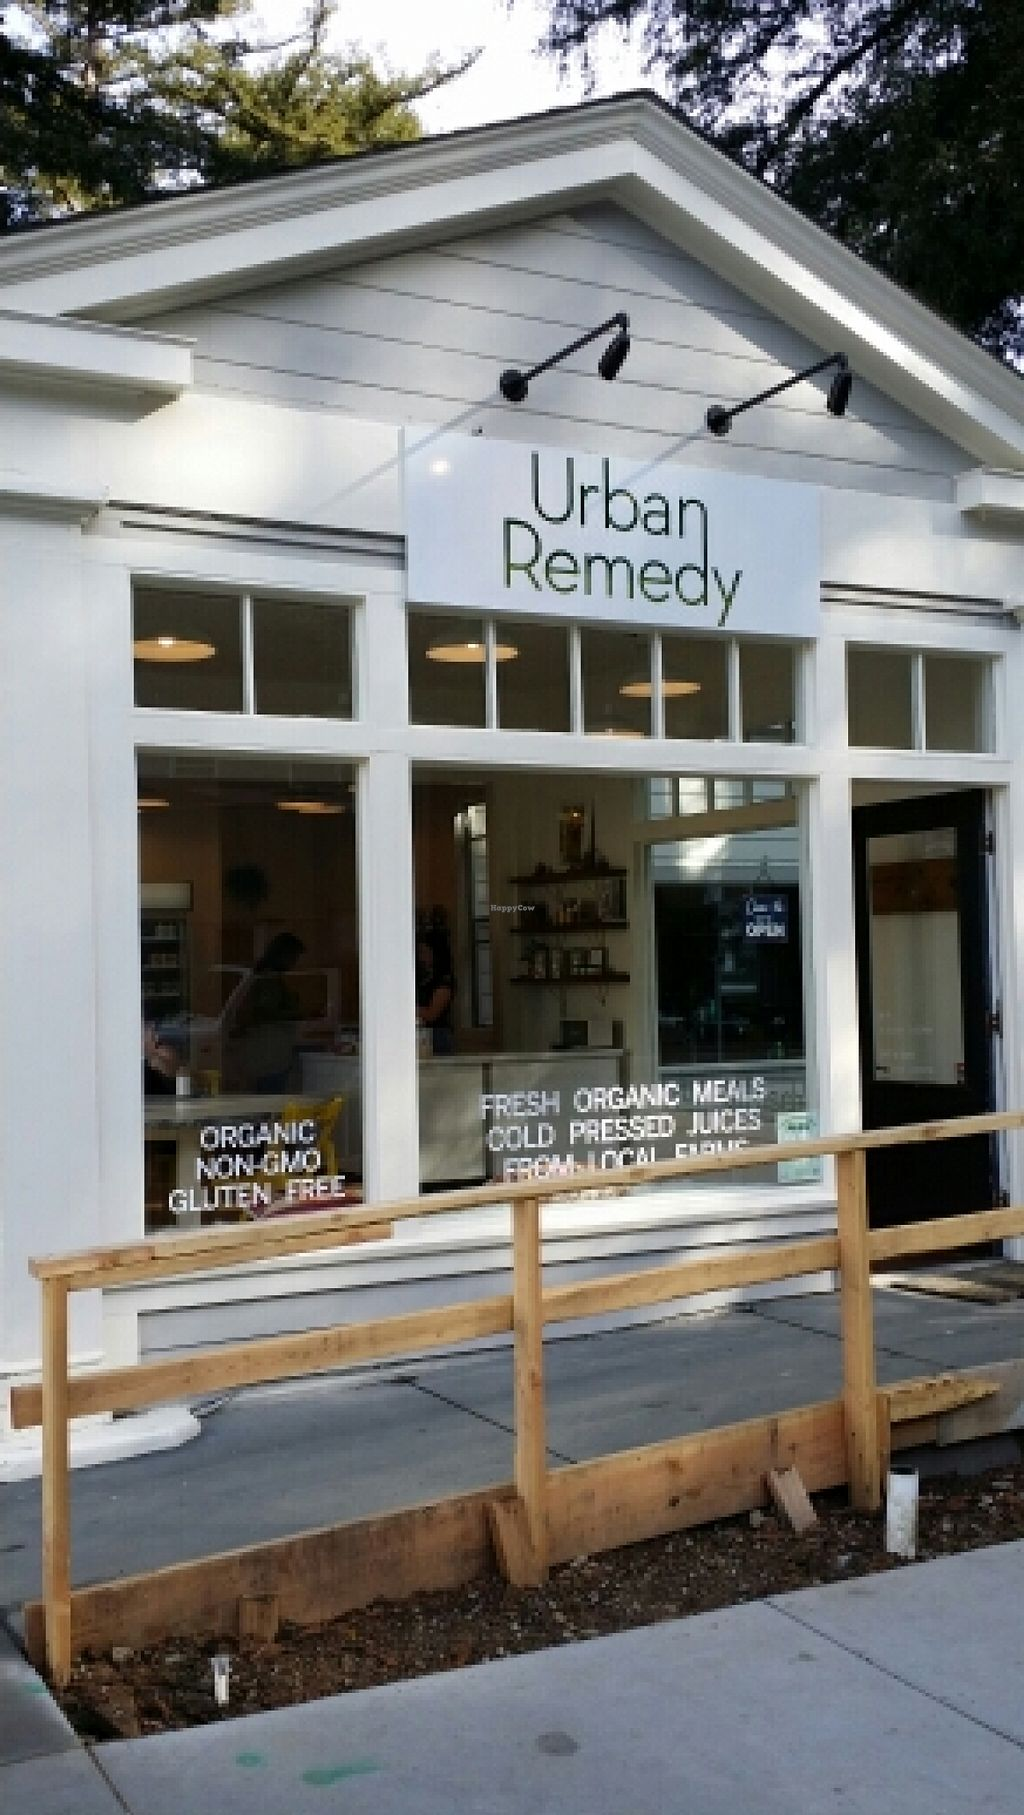 "Photo of Urban Remedy  by <a href=""/members/profile/catbone"">catbone</a> <br/>The Storefront <br/> February 24, 2016  - <a href='/contact/abuse/image/69530/137532'>Report</a>"